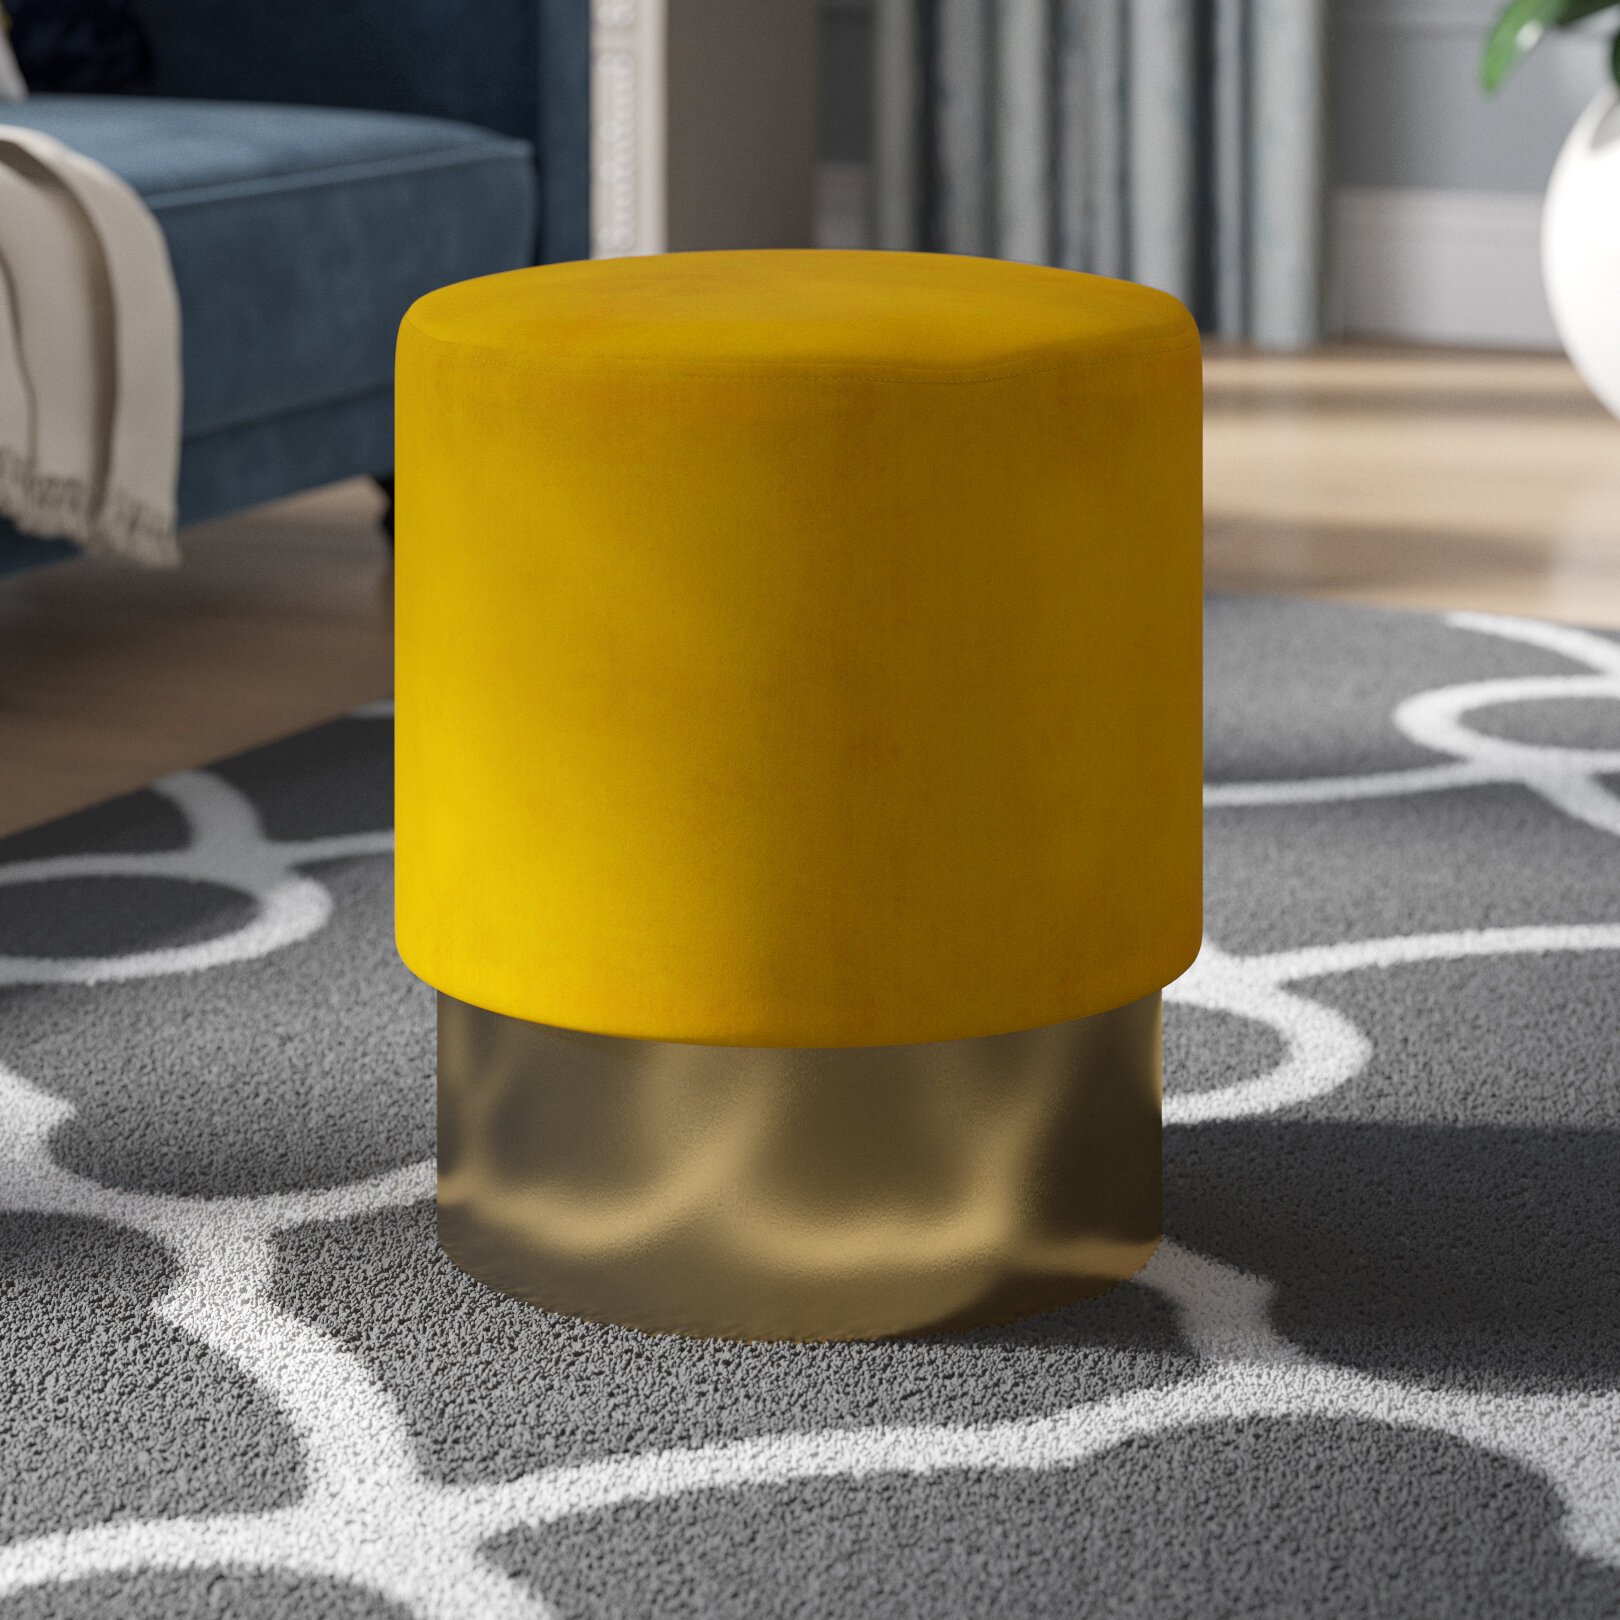 Awesome Labarbera Velvet Round Pouf Ottoman Caraccident5 Cool Chair Designs And Ideas Caraccident5Info